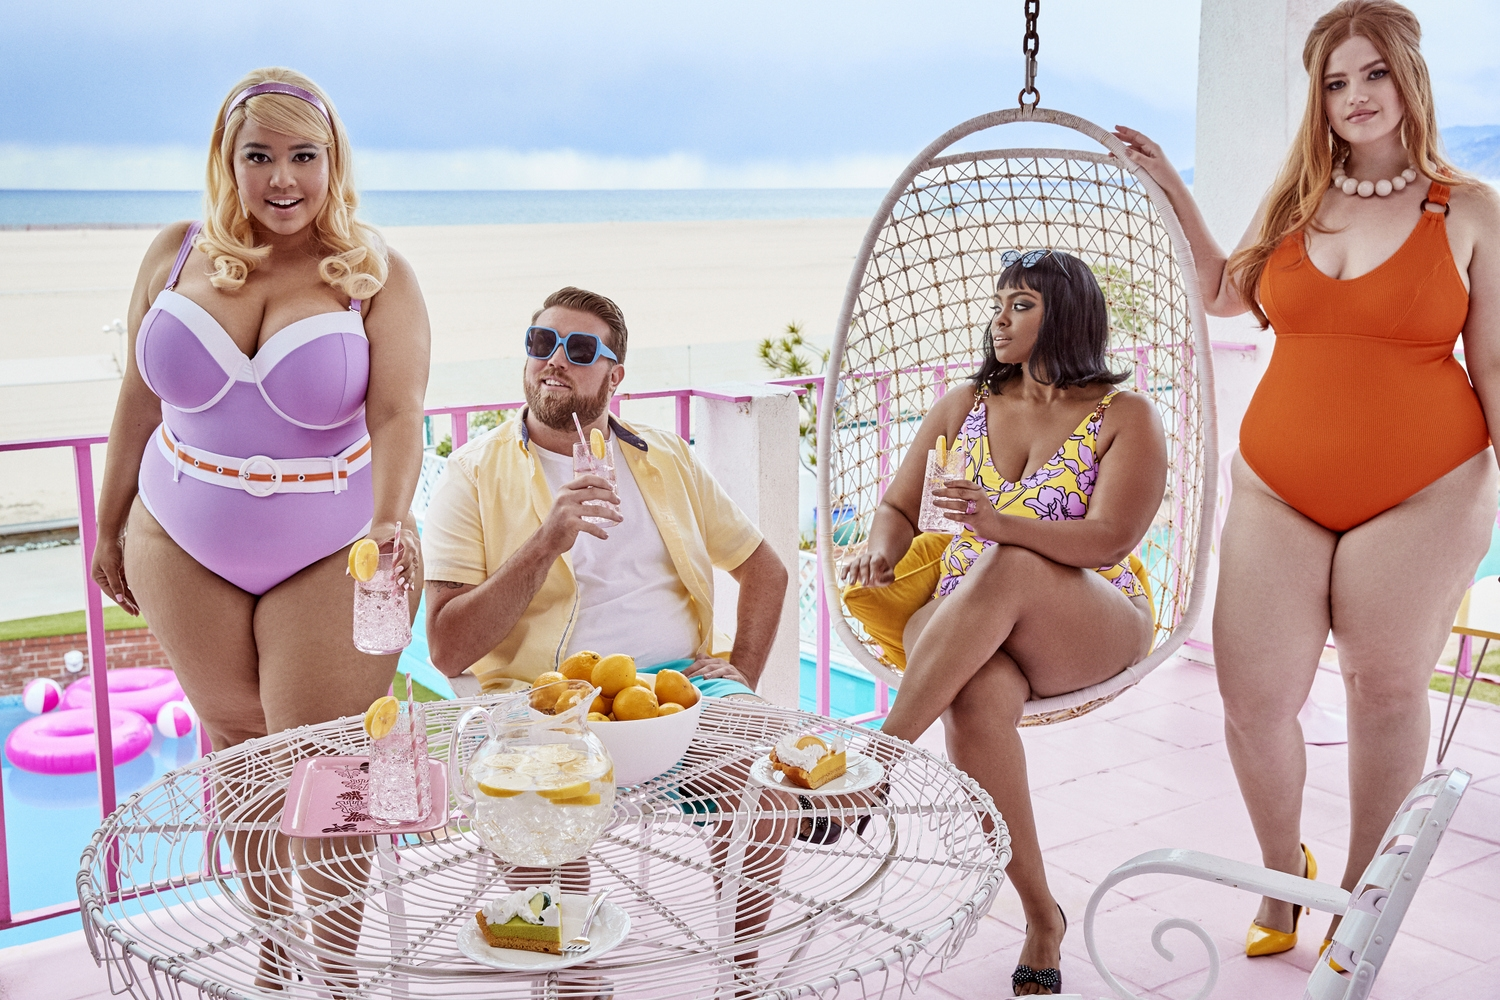 b94ce6969e The Latest Swim Inspo from the GabiFresh x Swimsuits for All Collab!